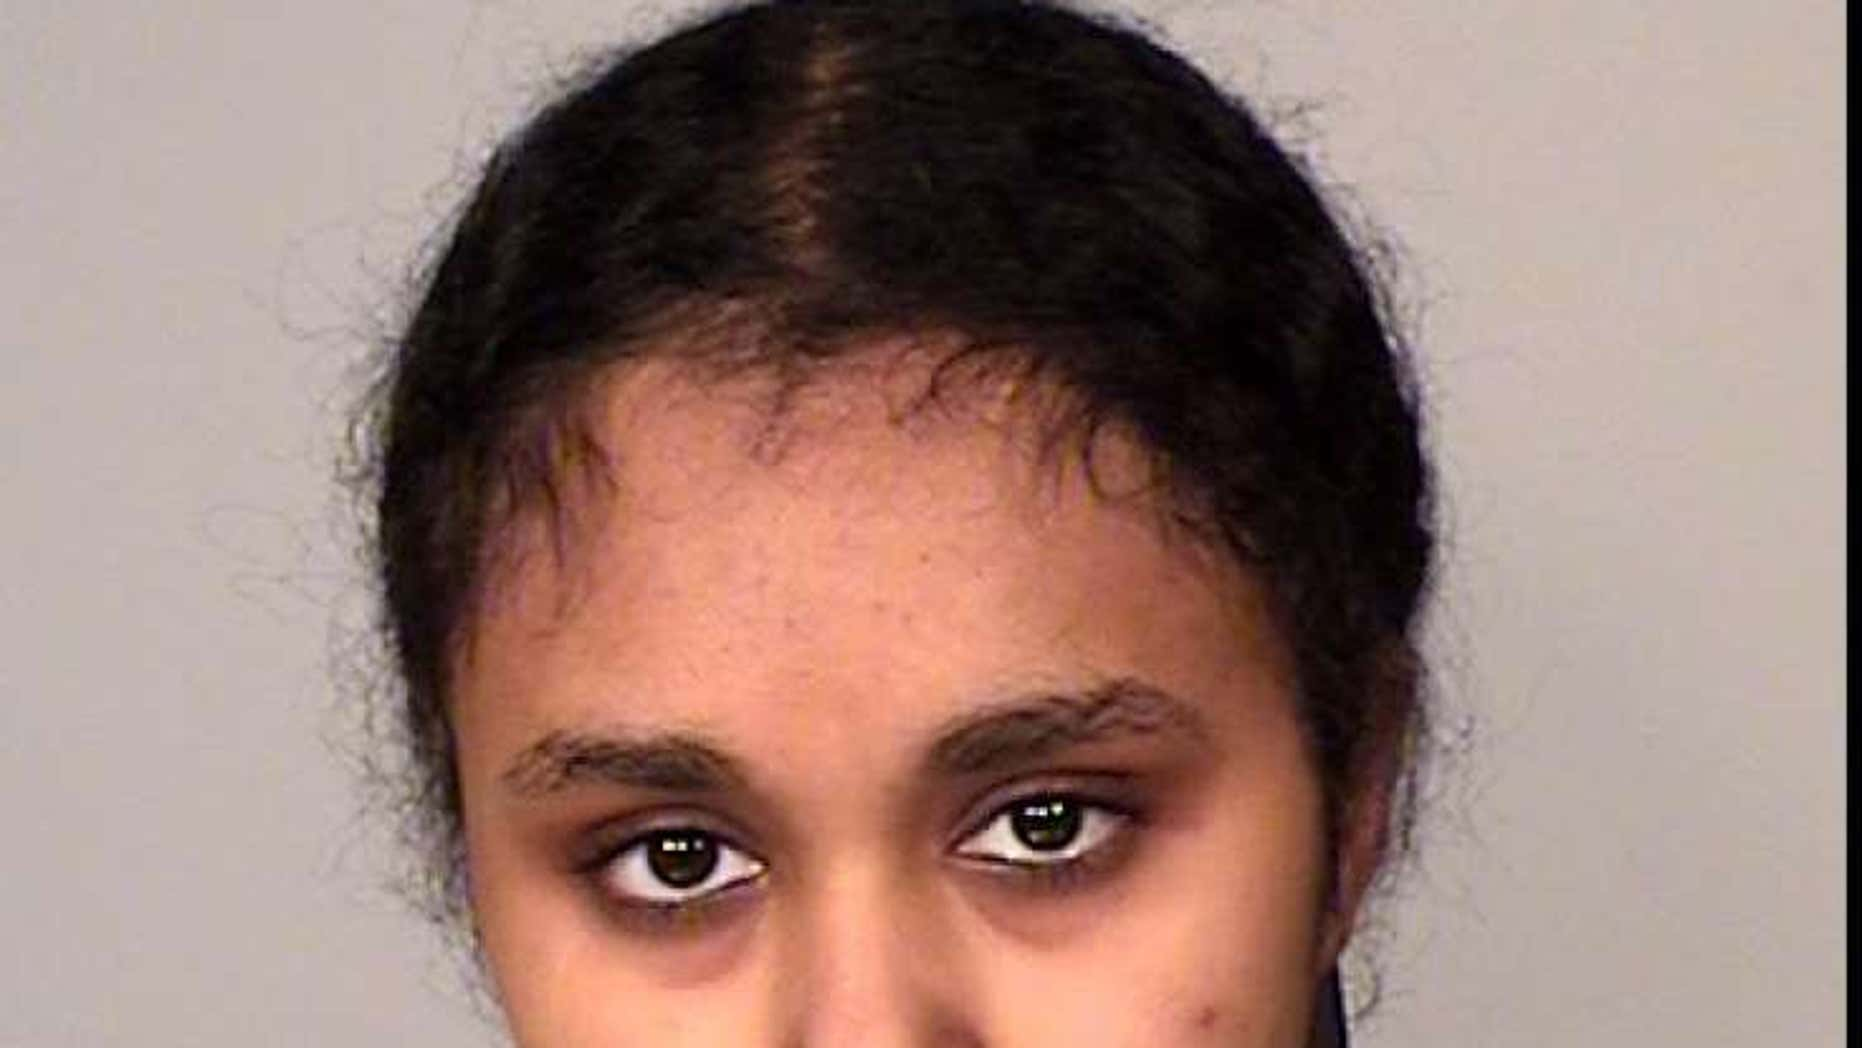 Tnuza Jamal Hassan, 19, a former student at St. Catherine University in St. Paul, admitted to investigators that she started the fires on Wednesday, Jan. 17, 2018, including one in a dormitory that housed a day care center. She's charged with first-degree arson.